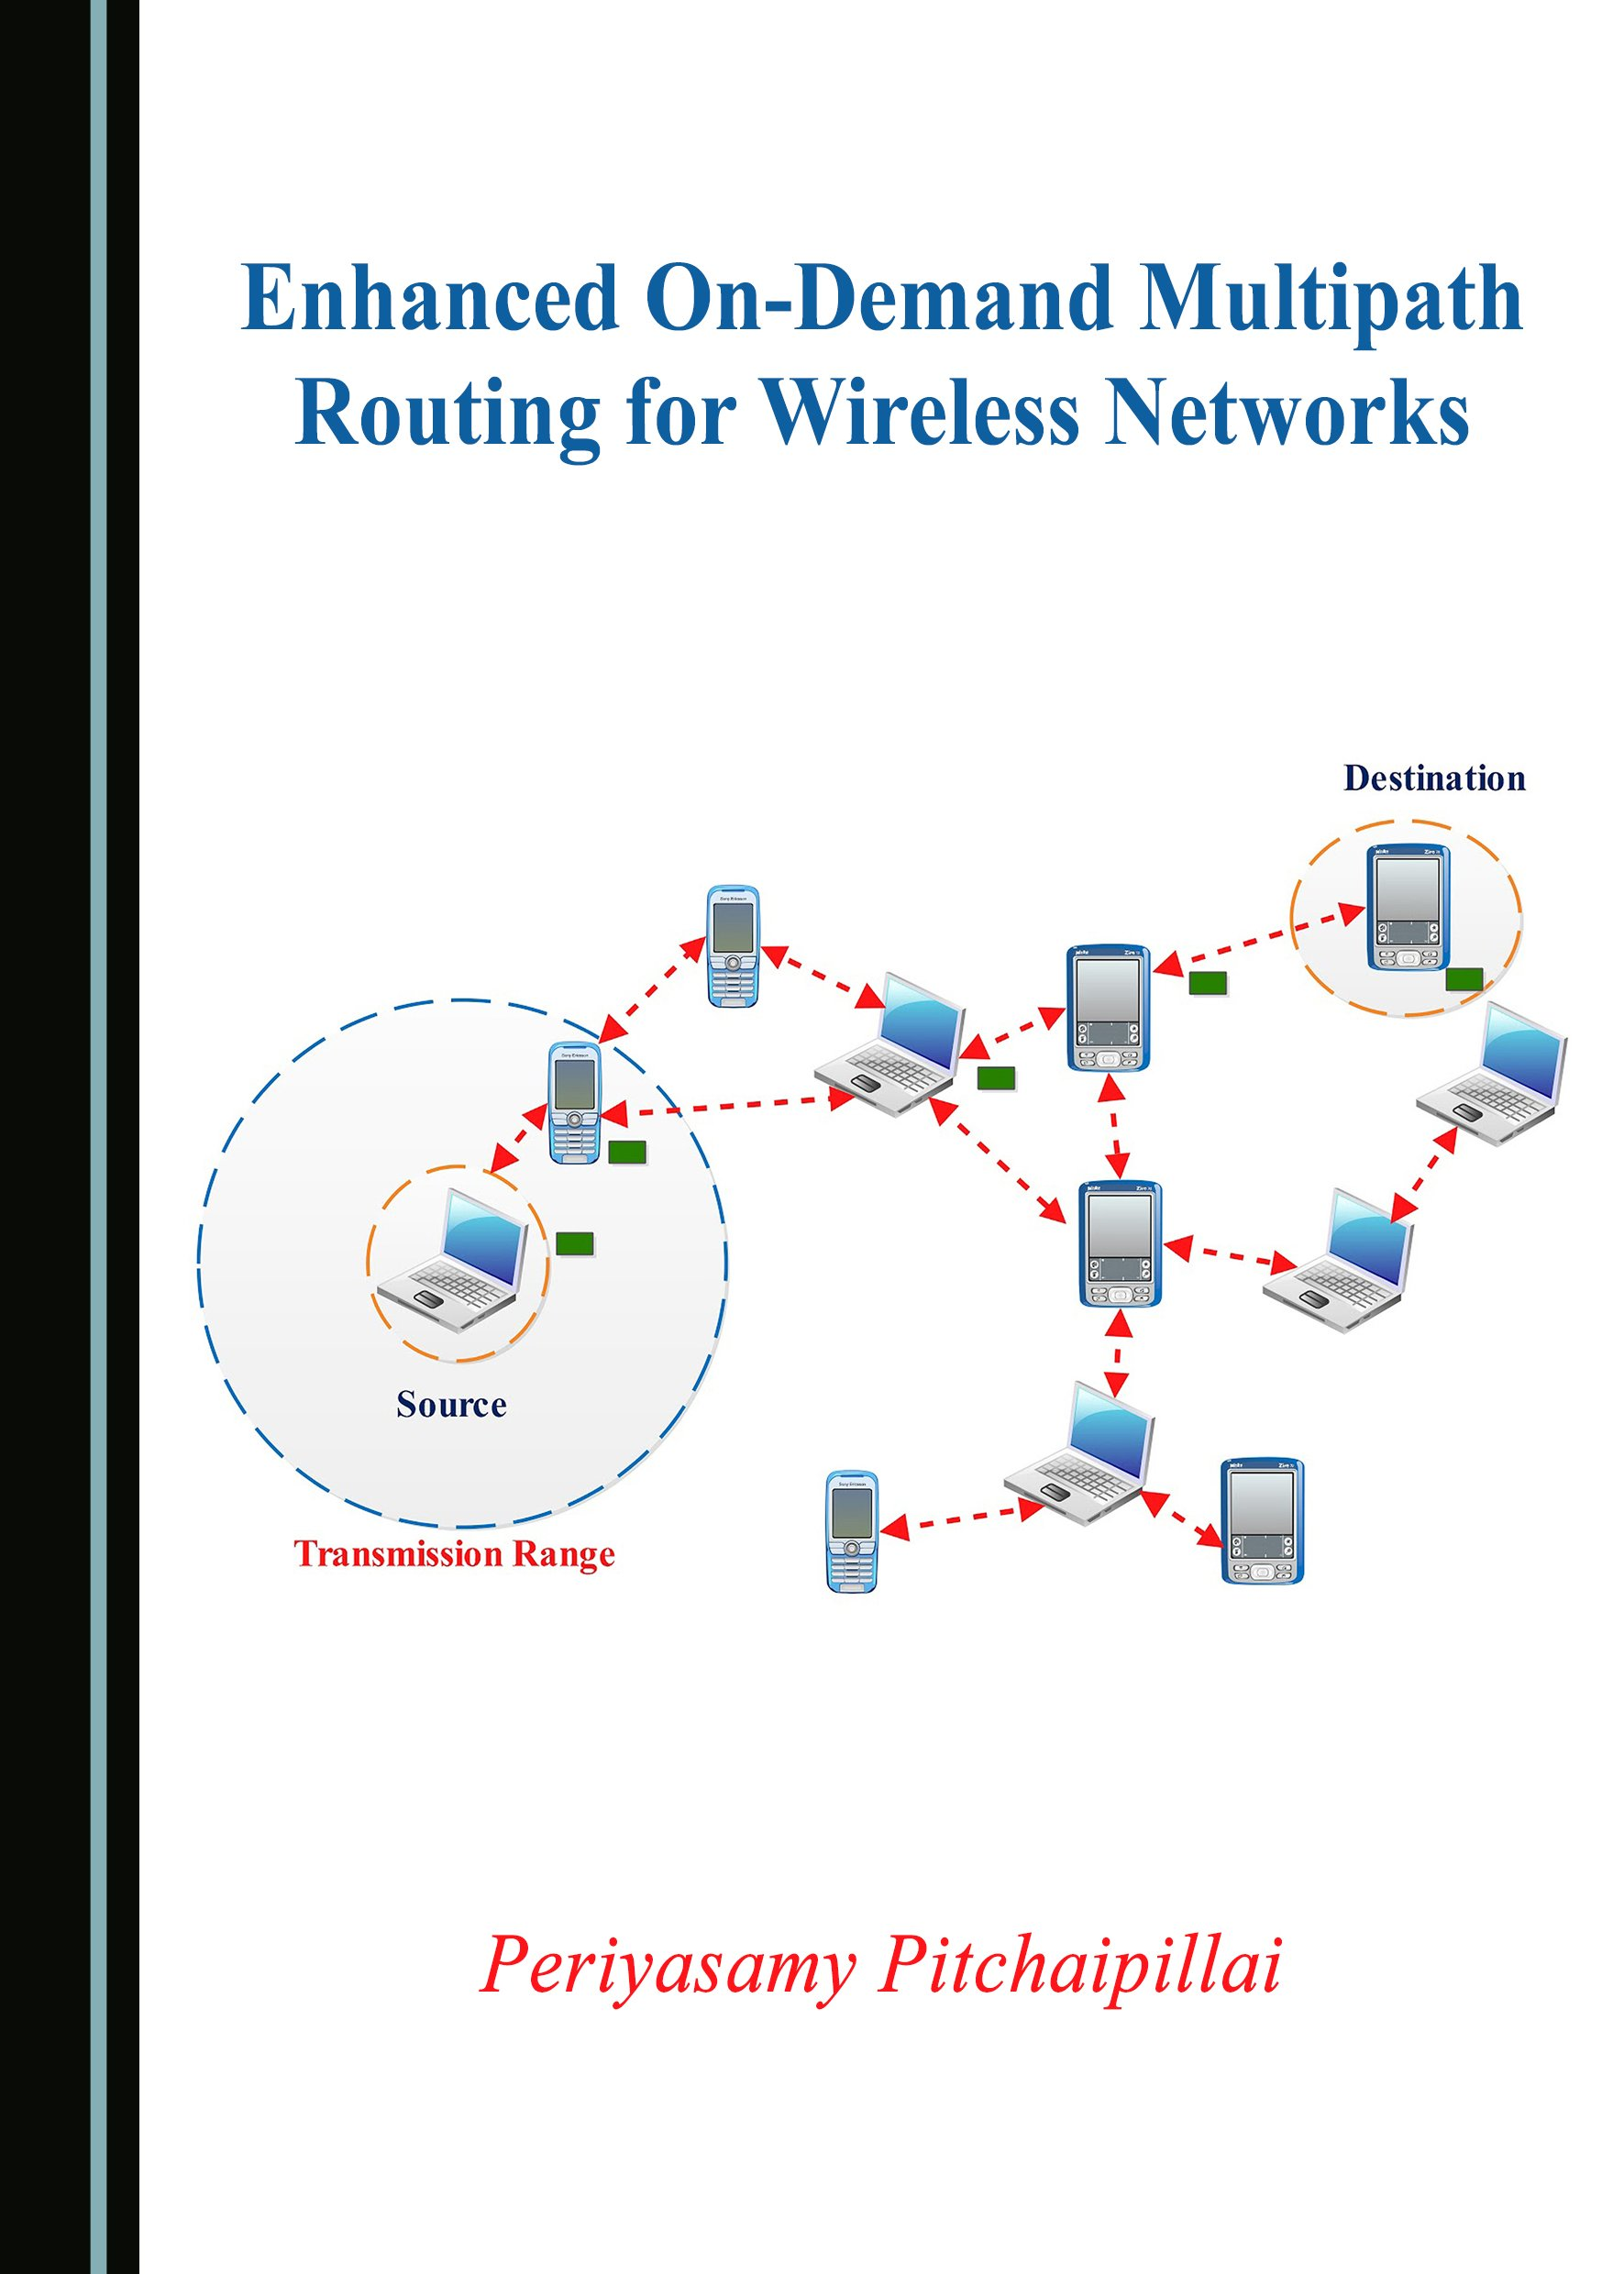 Enhanced On-Demand Multipath Routing for Wireless Networks